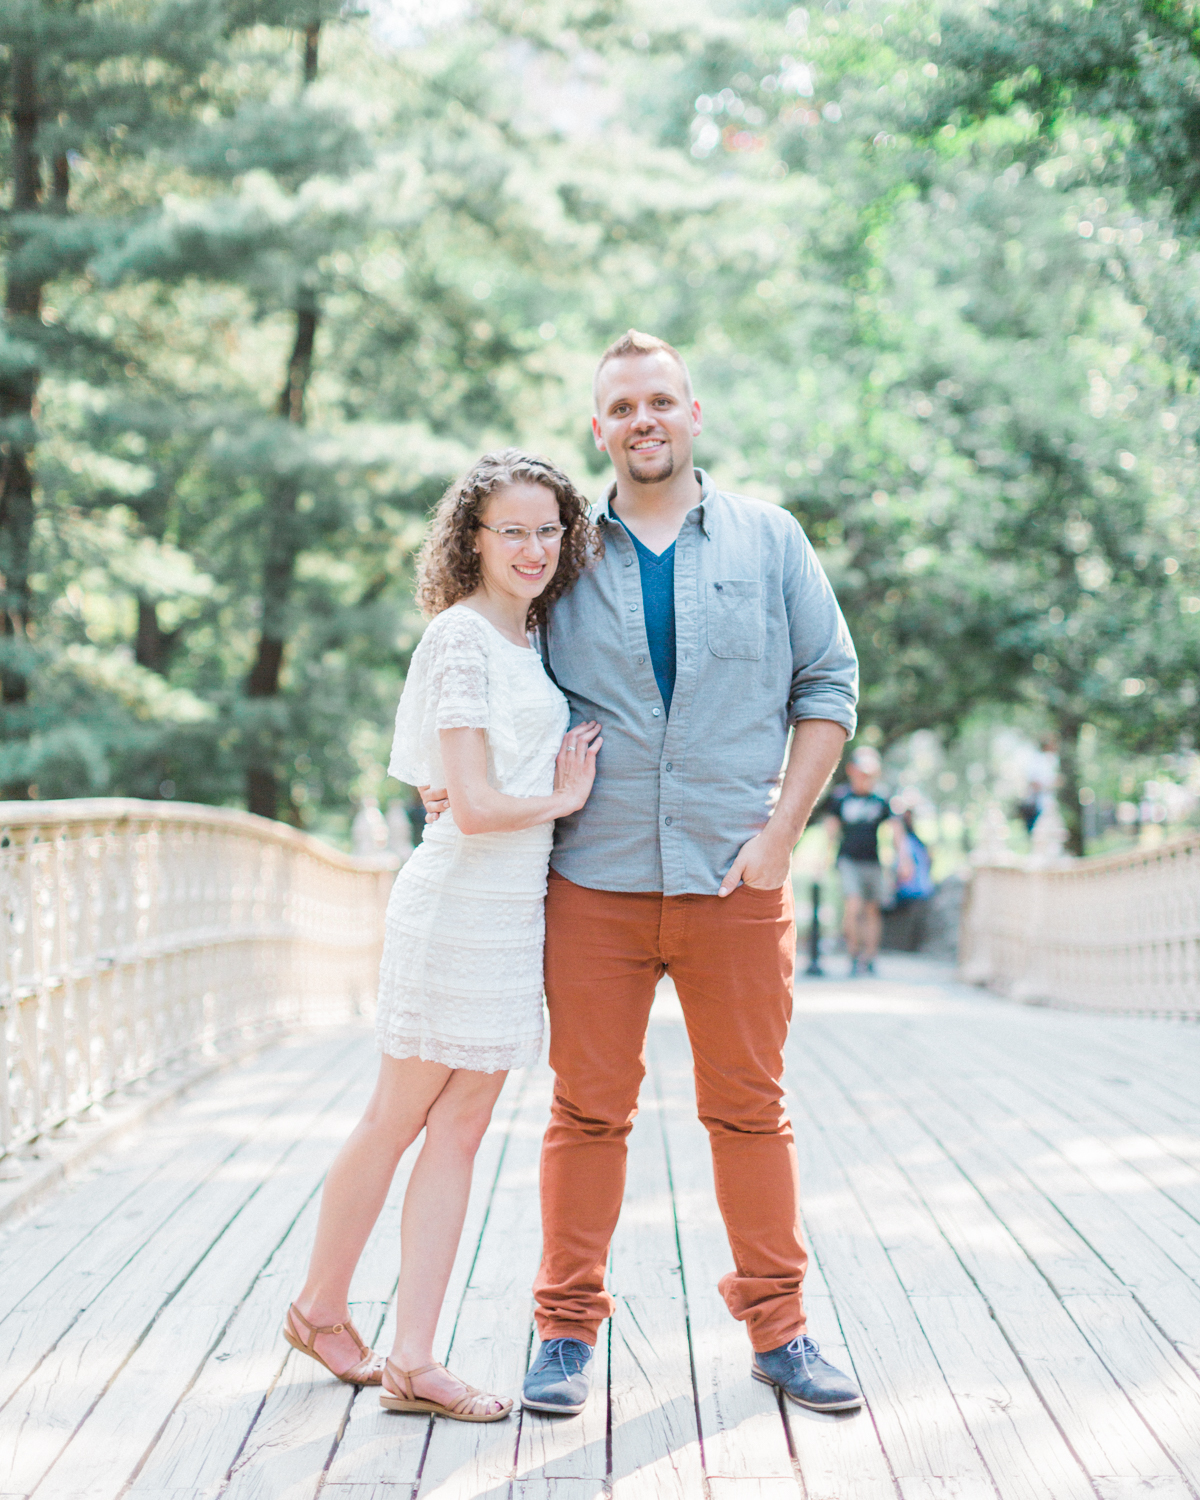 Calgary-Engagement-Photograoher-central-park-session-7.jpg